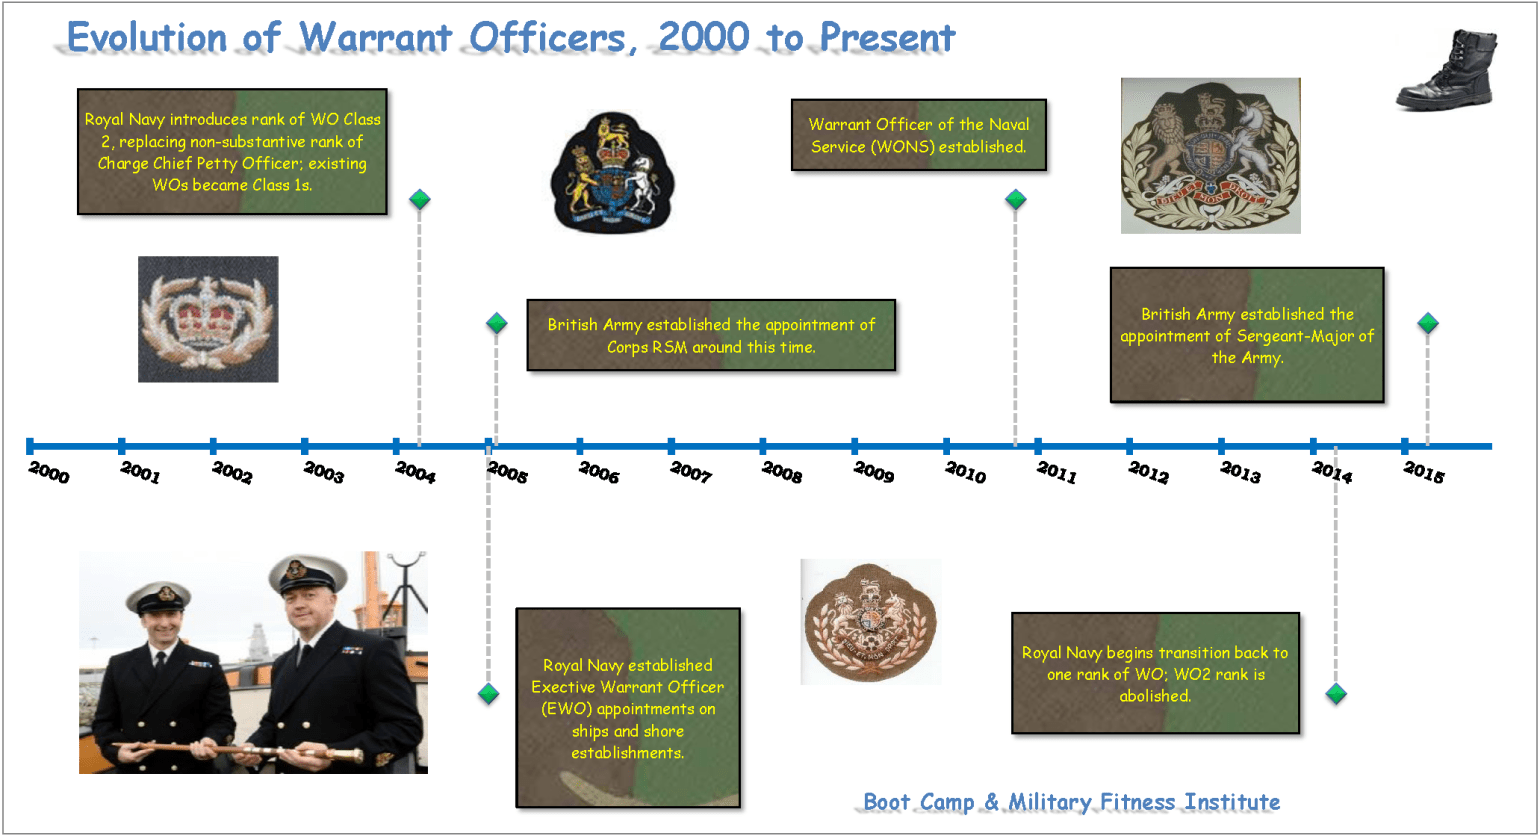 Warrant Officers & the British Armed Forces, 2000-Present